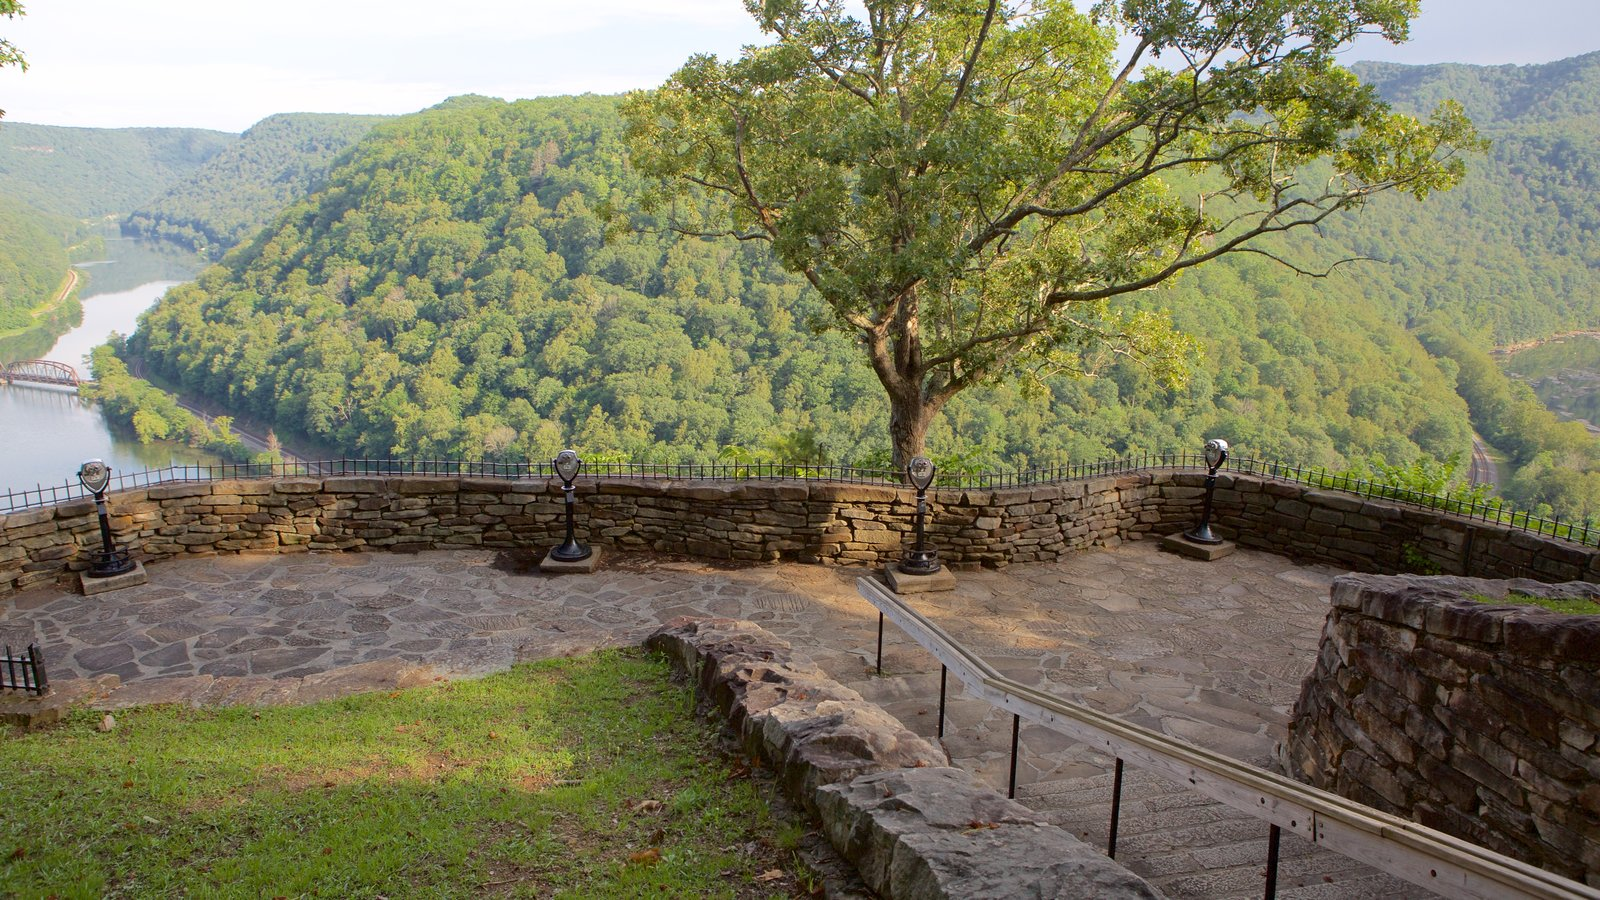 Hawks Nest State Park which includes tranquil scenes, views and mountains